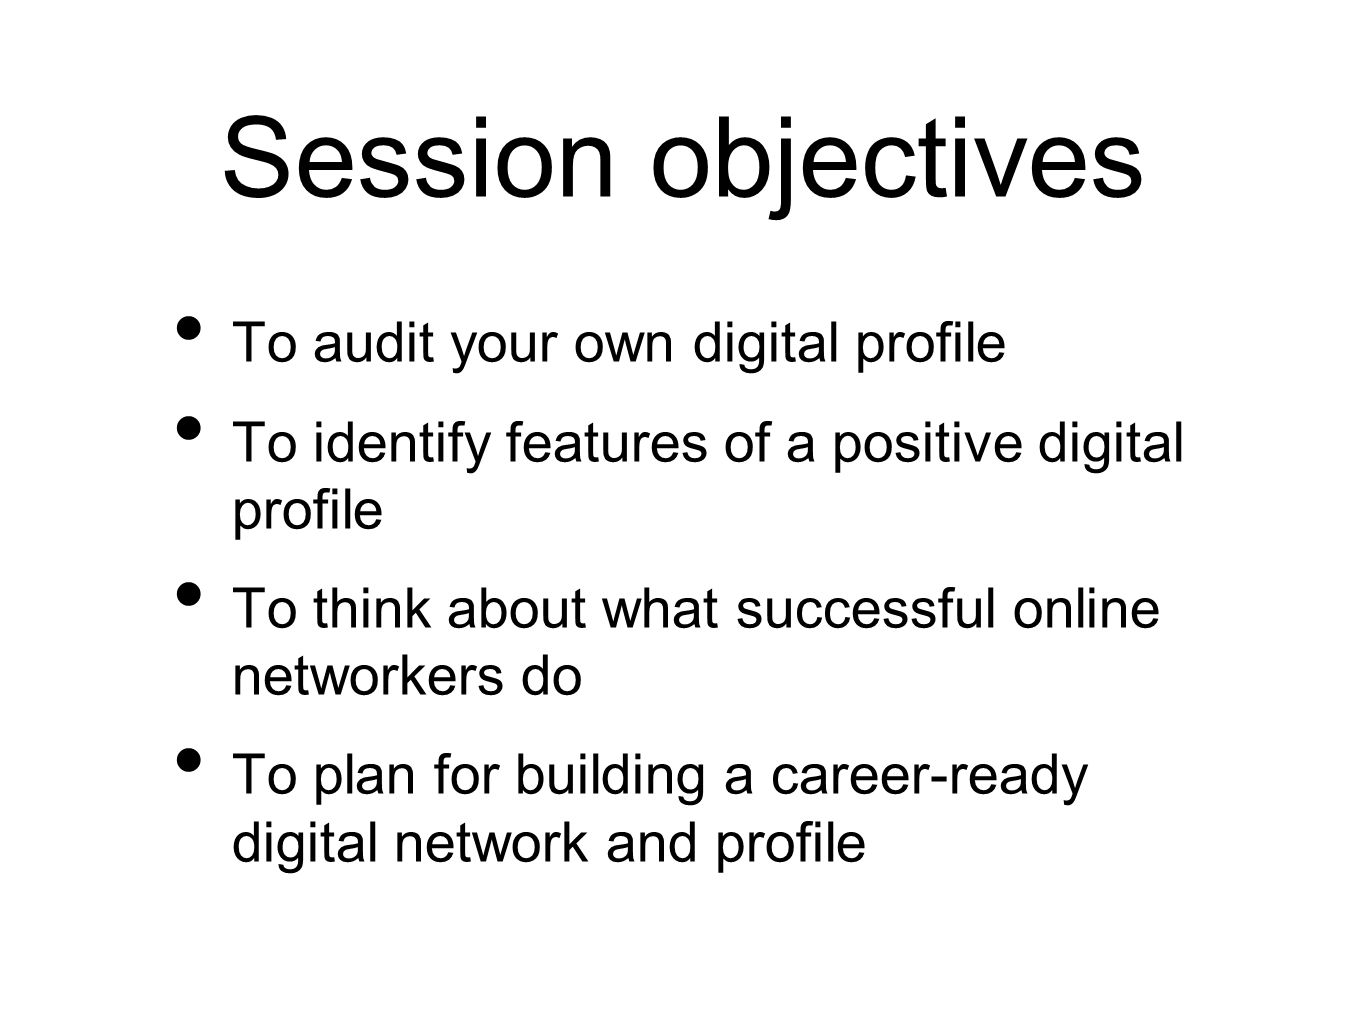 Session objectives To audit your own digital profile To identify features of a positive digital profile To think about what successful online networke